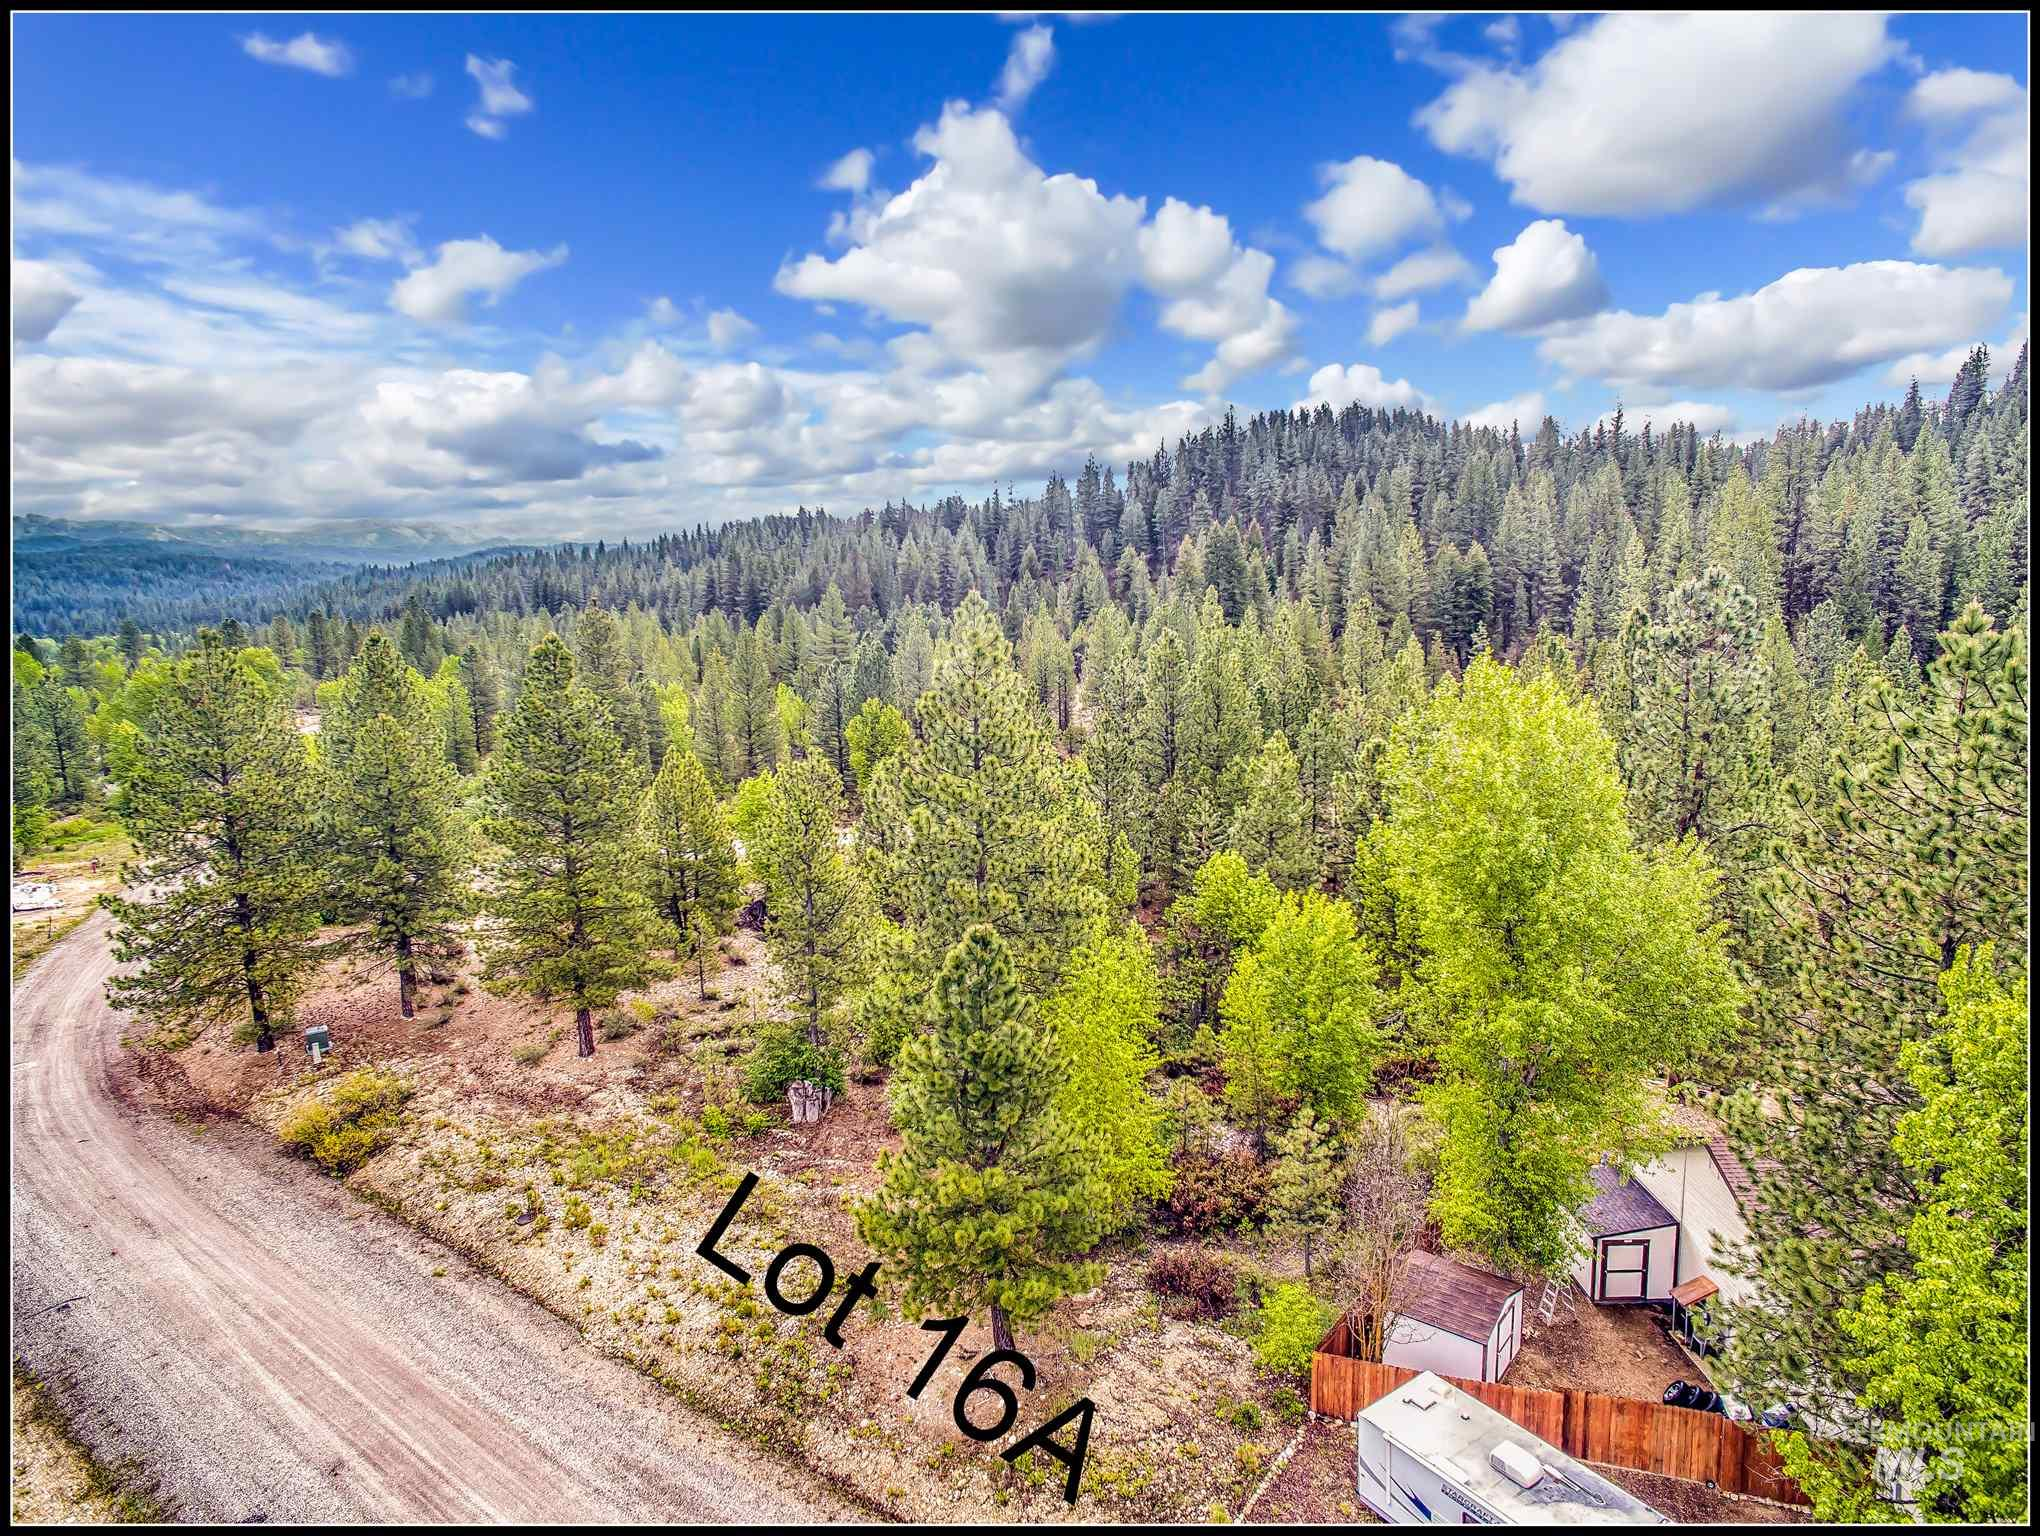 Lot 16A Mores Creek Dr, Idaho City, Idaho 83631, Land For Sale, Price $56,990, 98784697